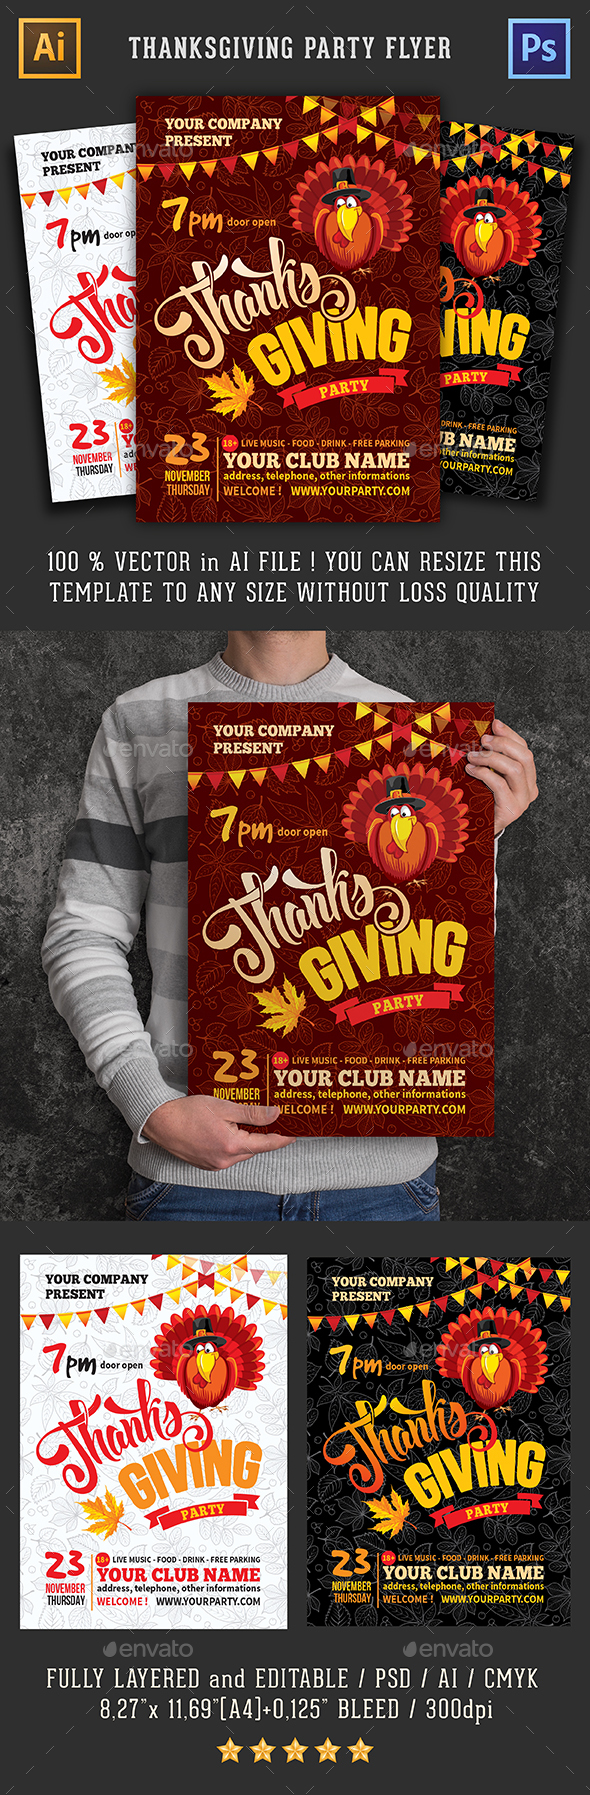 Template For Thanksgiving Party Flyer